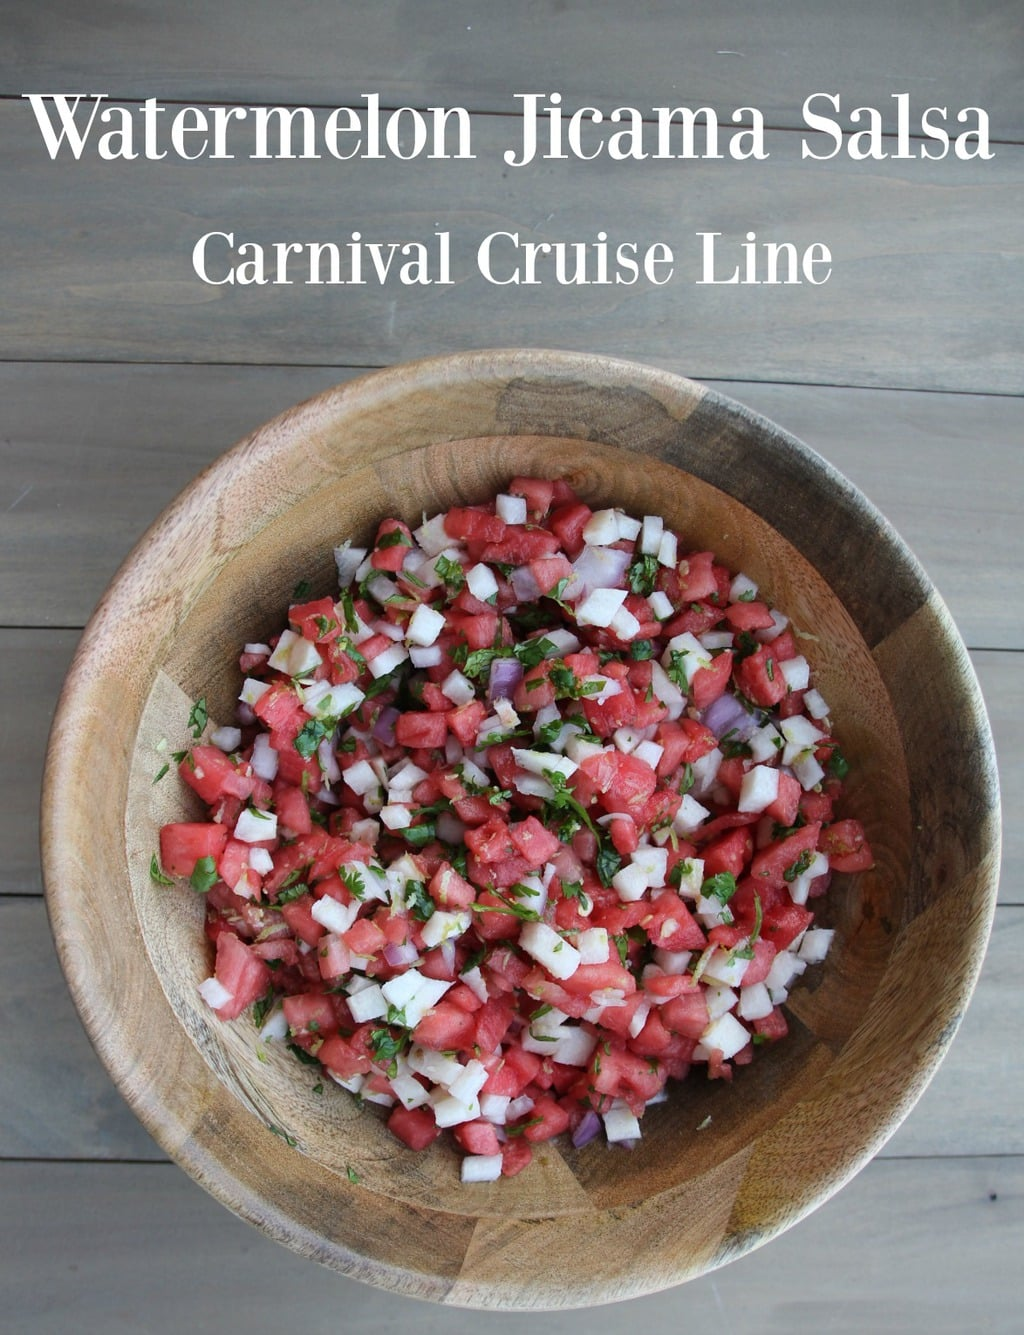 If you have sailed on a Carnival ship and eaten at the Blue Iguana, you probably remember the Watermelon Jicama Salsa. It's kind of unforgettable, to the point that I had to make it when I got home.